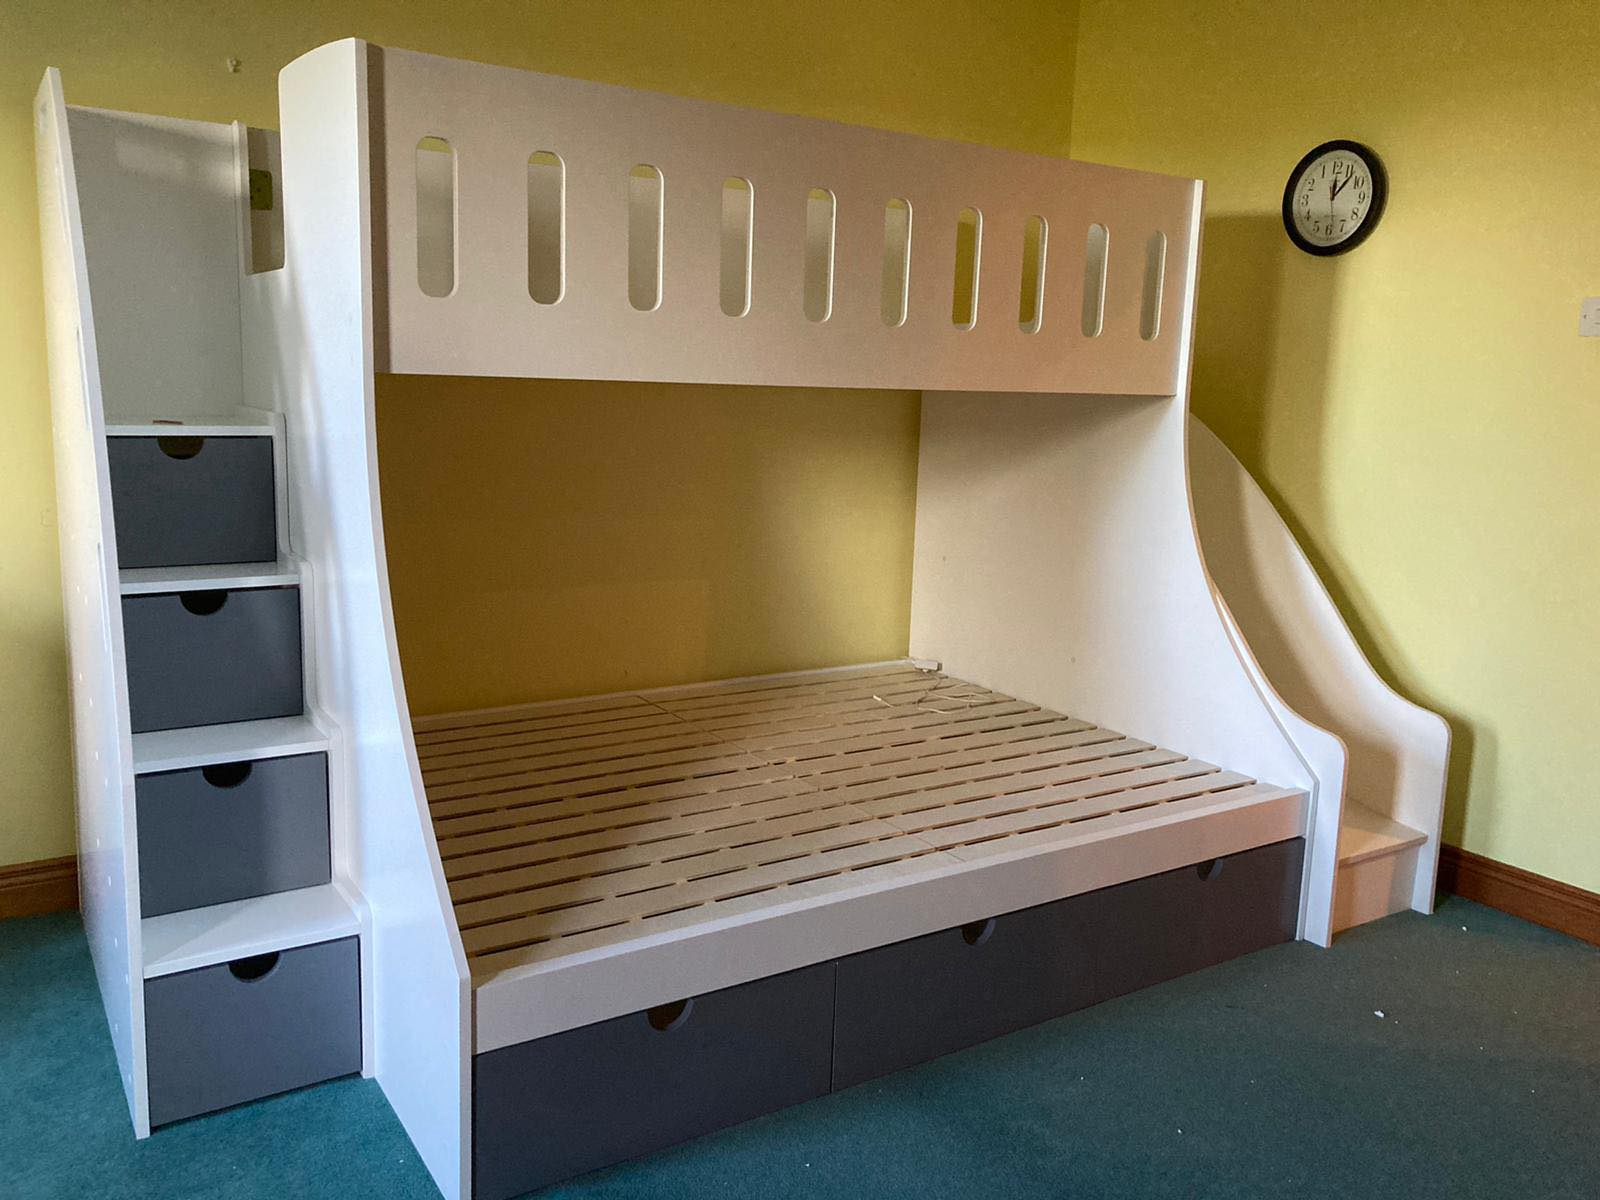 Can I Find A Princess Bunk Bed With Stairs?